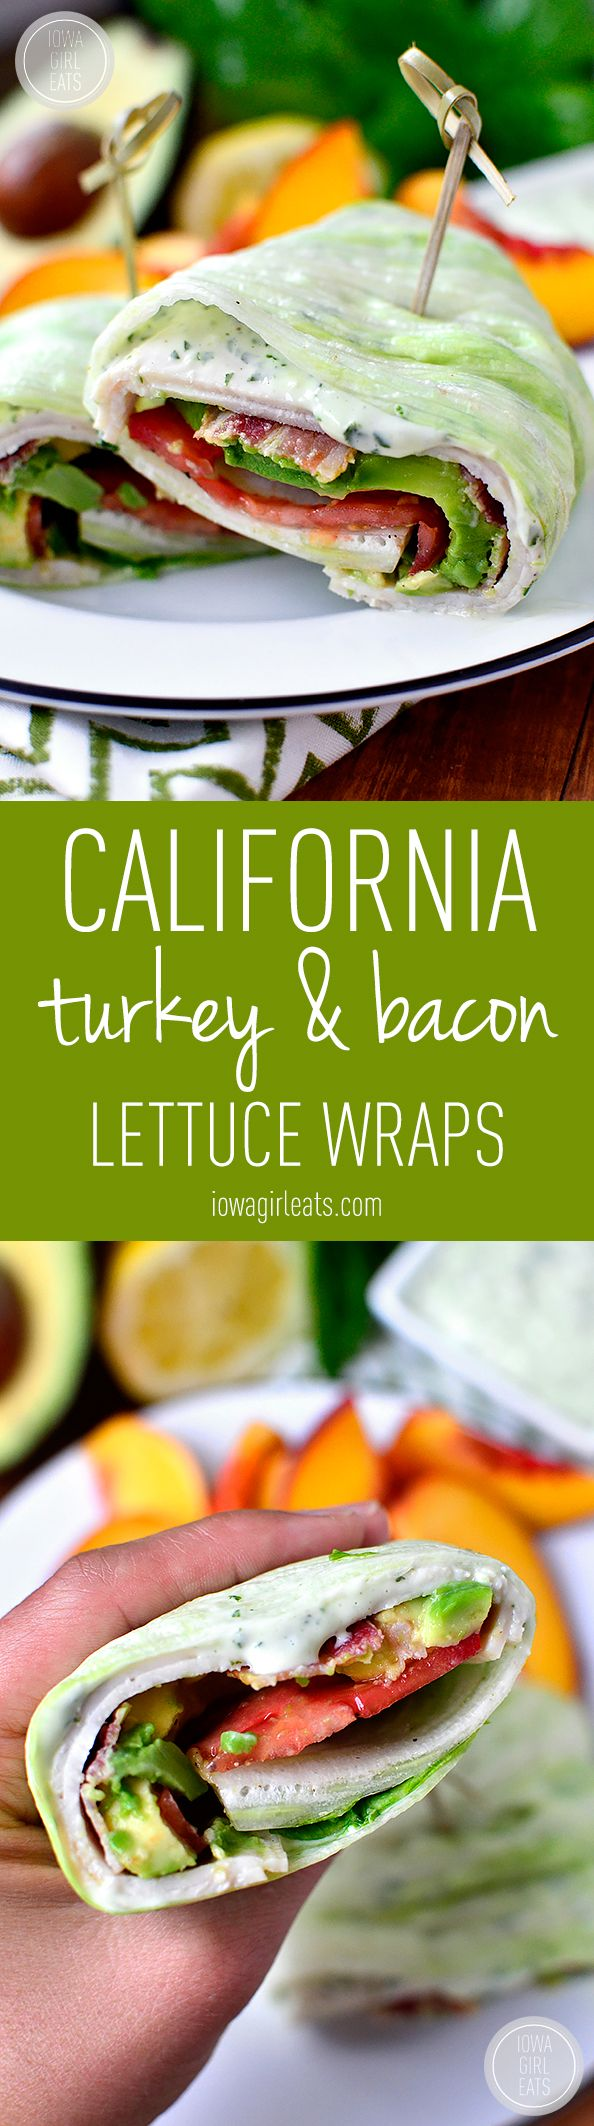 California Turkey and Bacon Lettuce Wraps with Basil-Mayo is a fresh and filling low-carb meal that comes together in minutes! #glutenfree | iowagirleats.com: